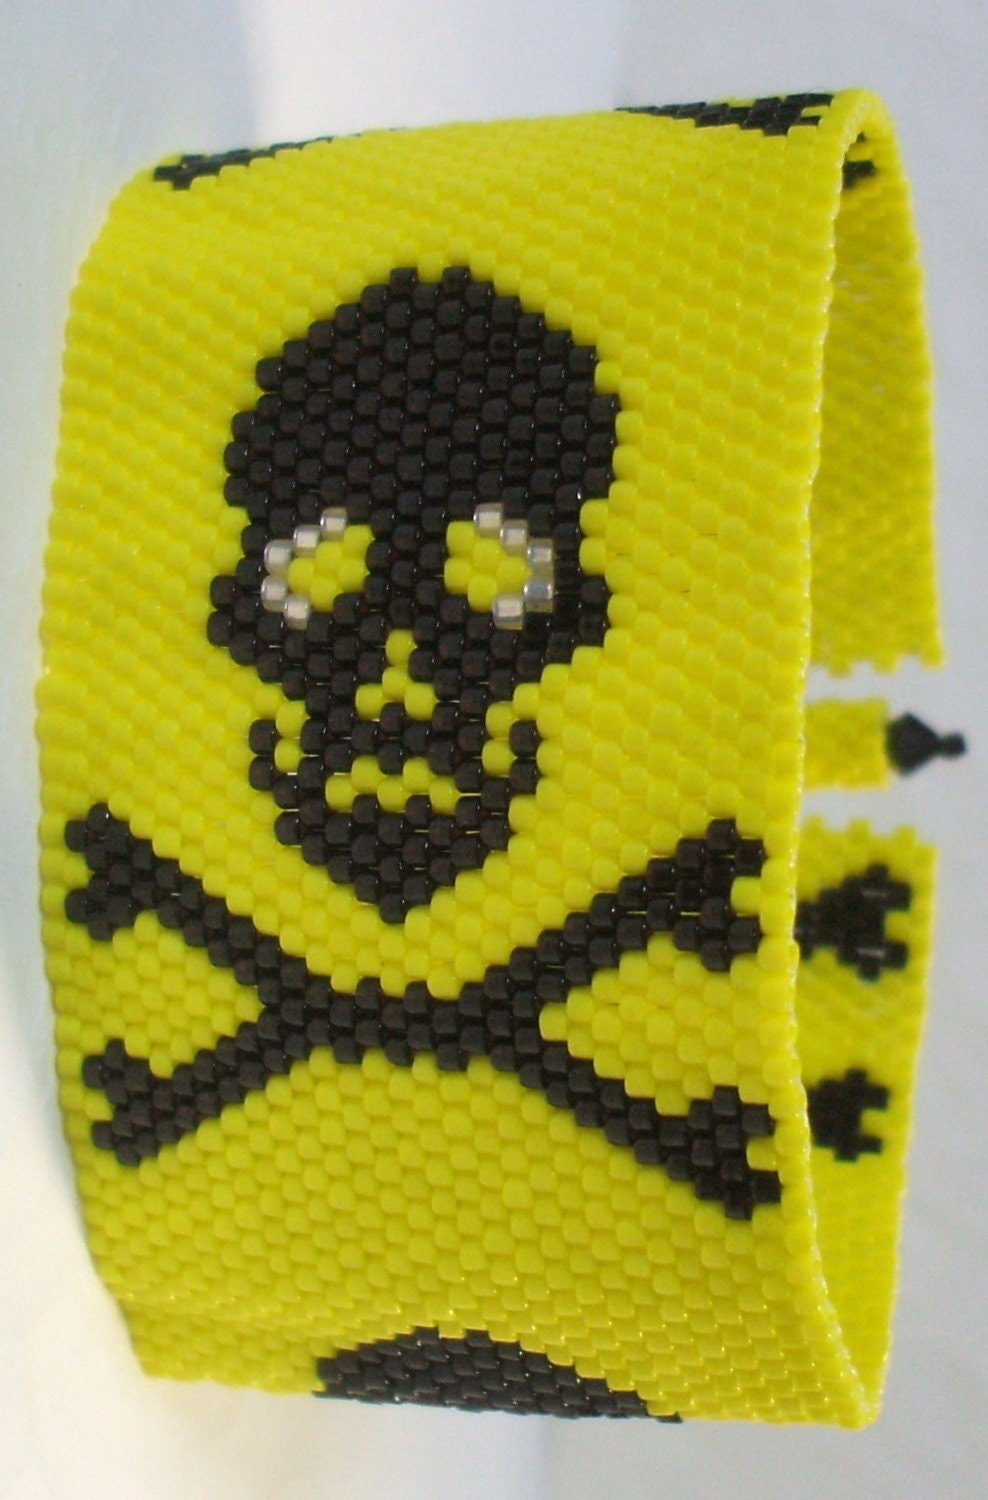 Jolly Roger Pirate Skull And Crossbones Cuff Bracelet